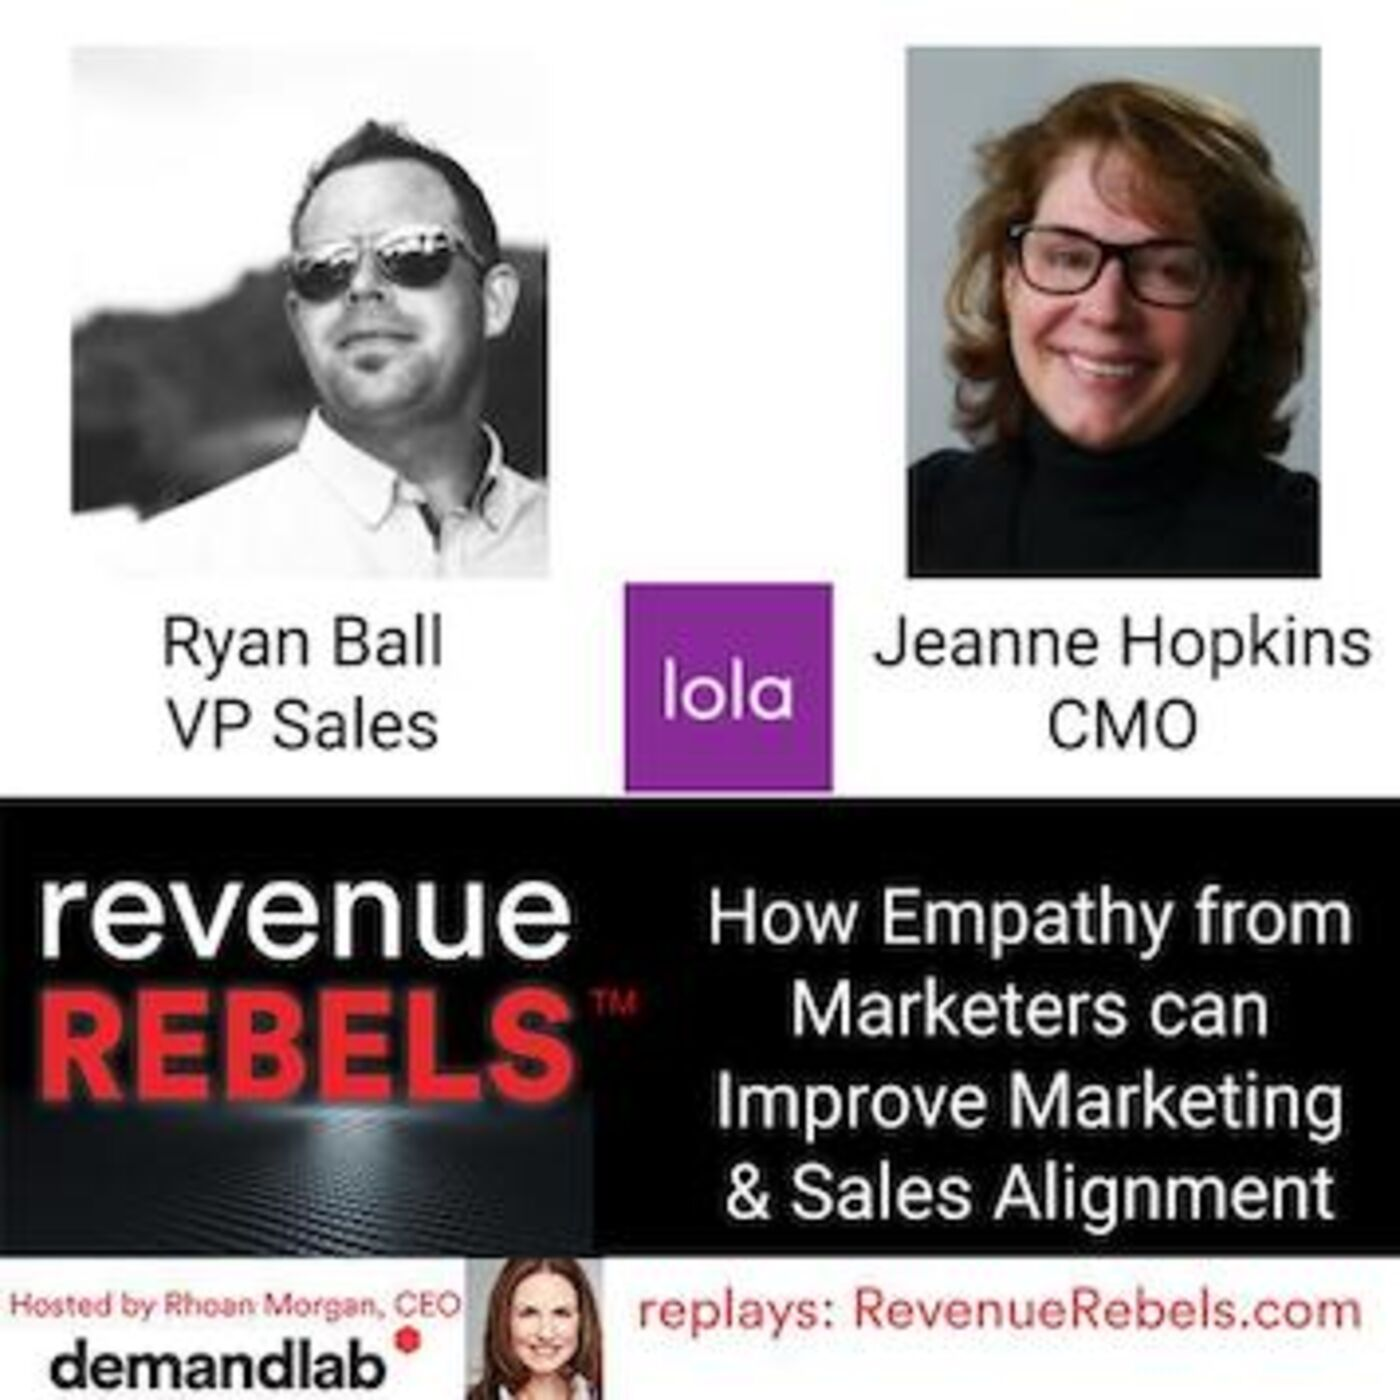 How Empathy from Marketers can Improve Marketing & Sales Alignment